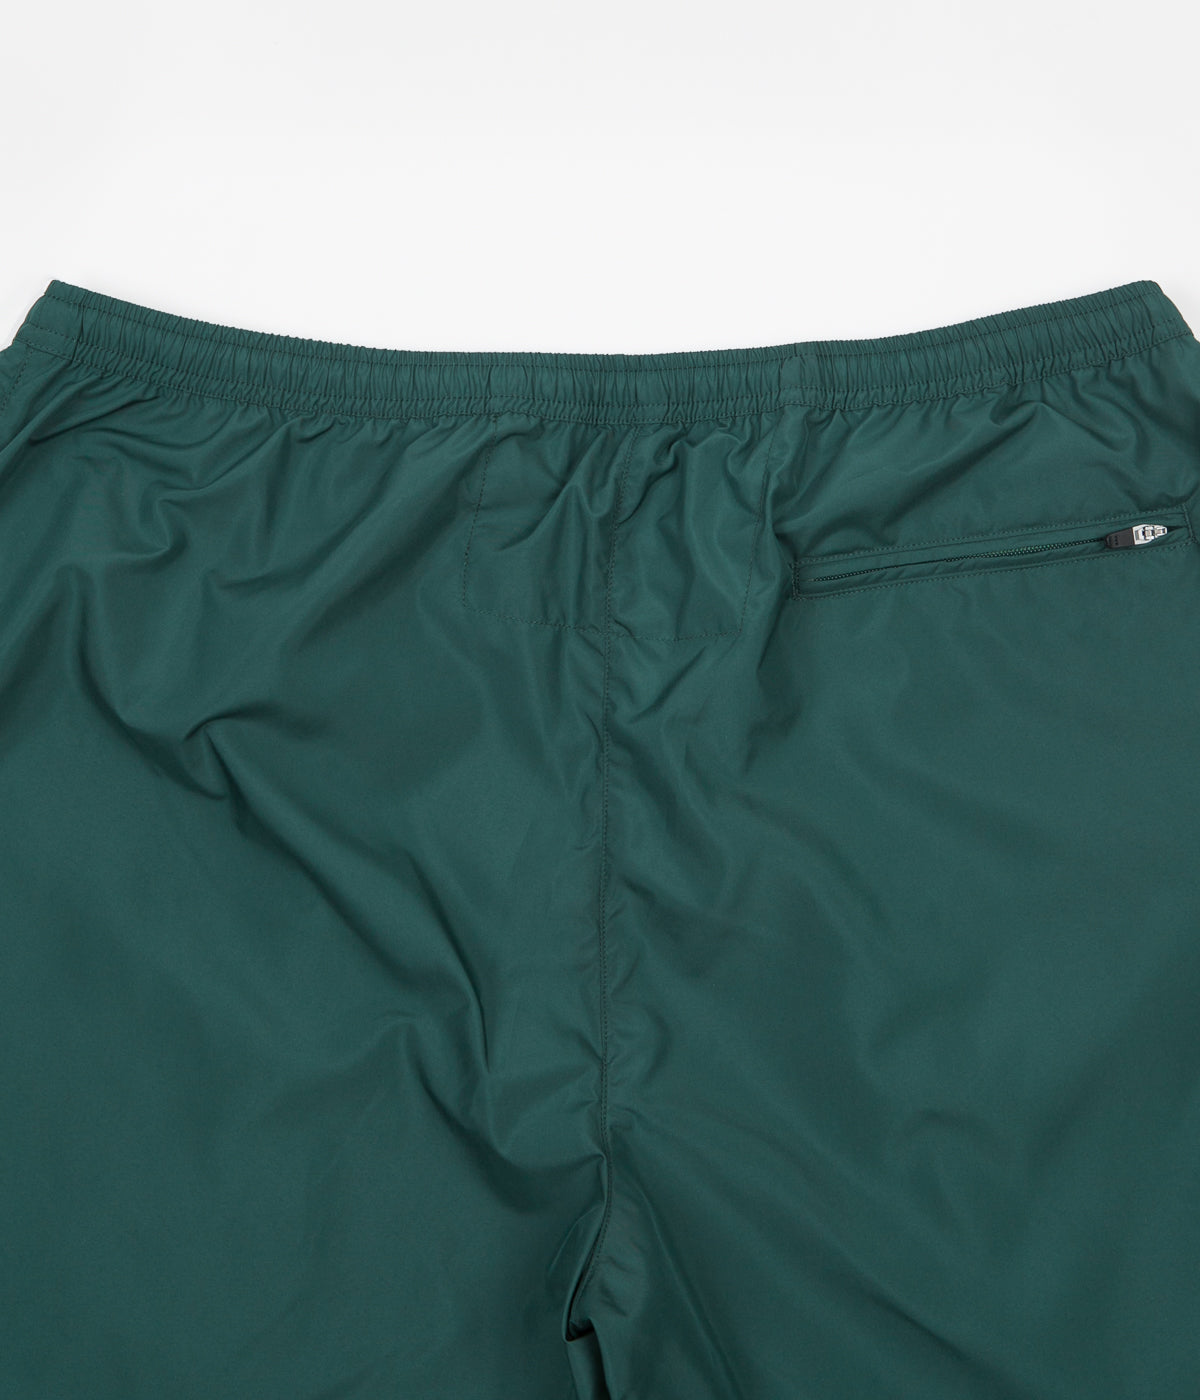 Quasi Marq Trunk Shorts - Forest